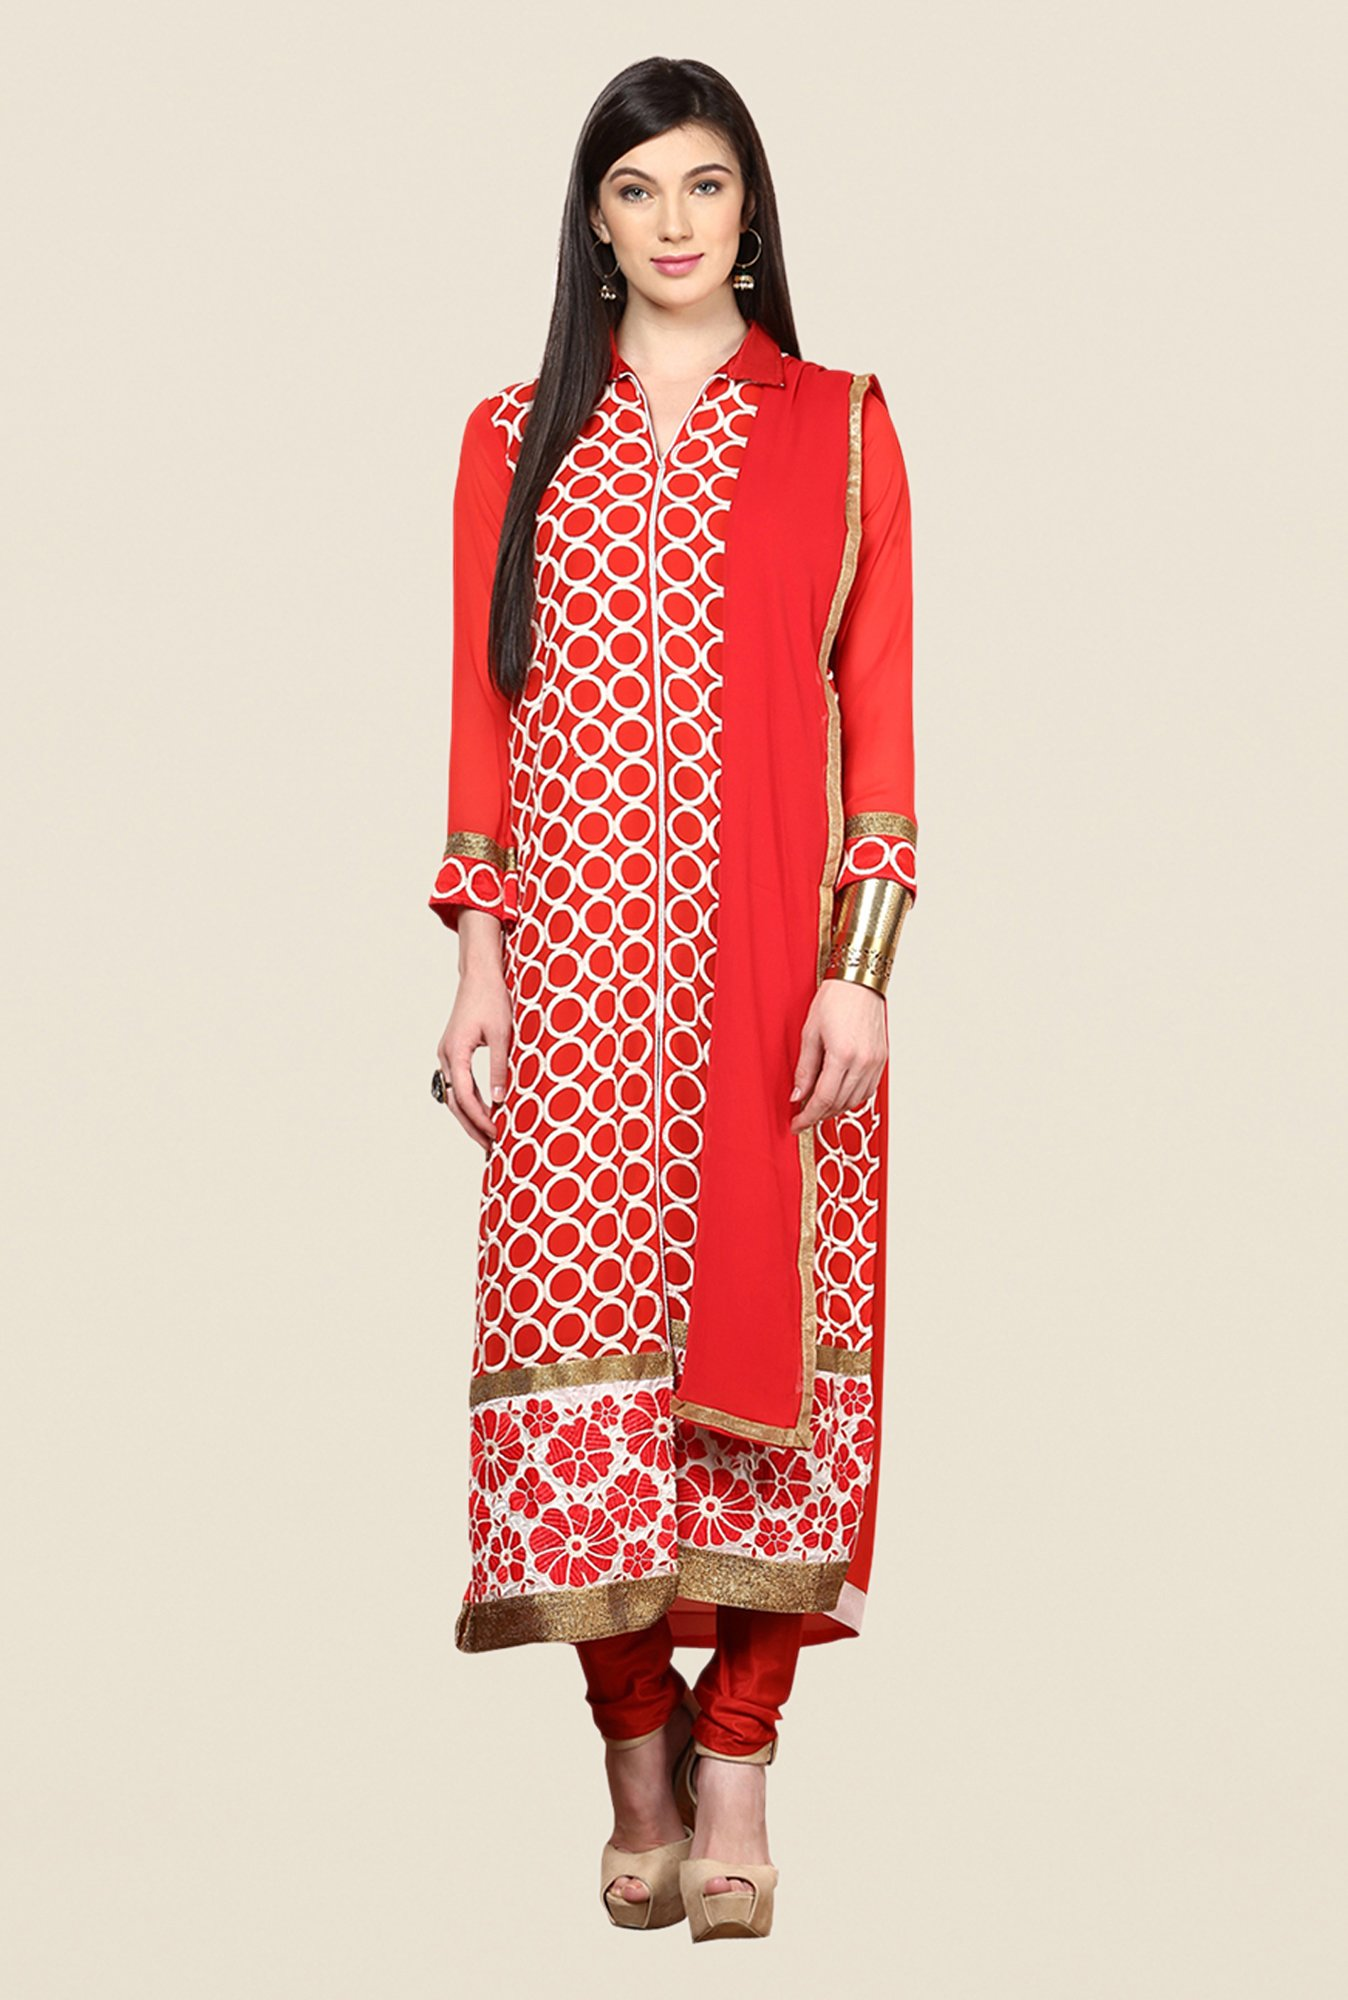 Yepme Red Barabal Unstitched Suit Set